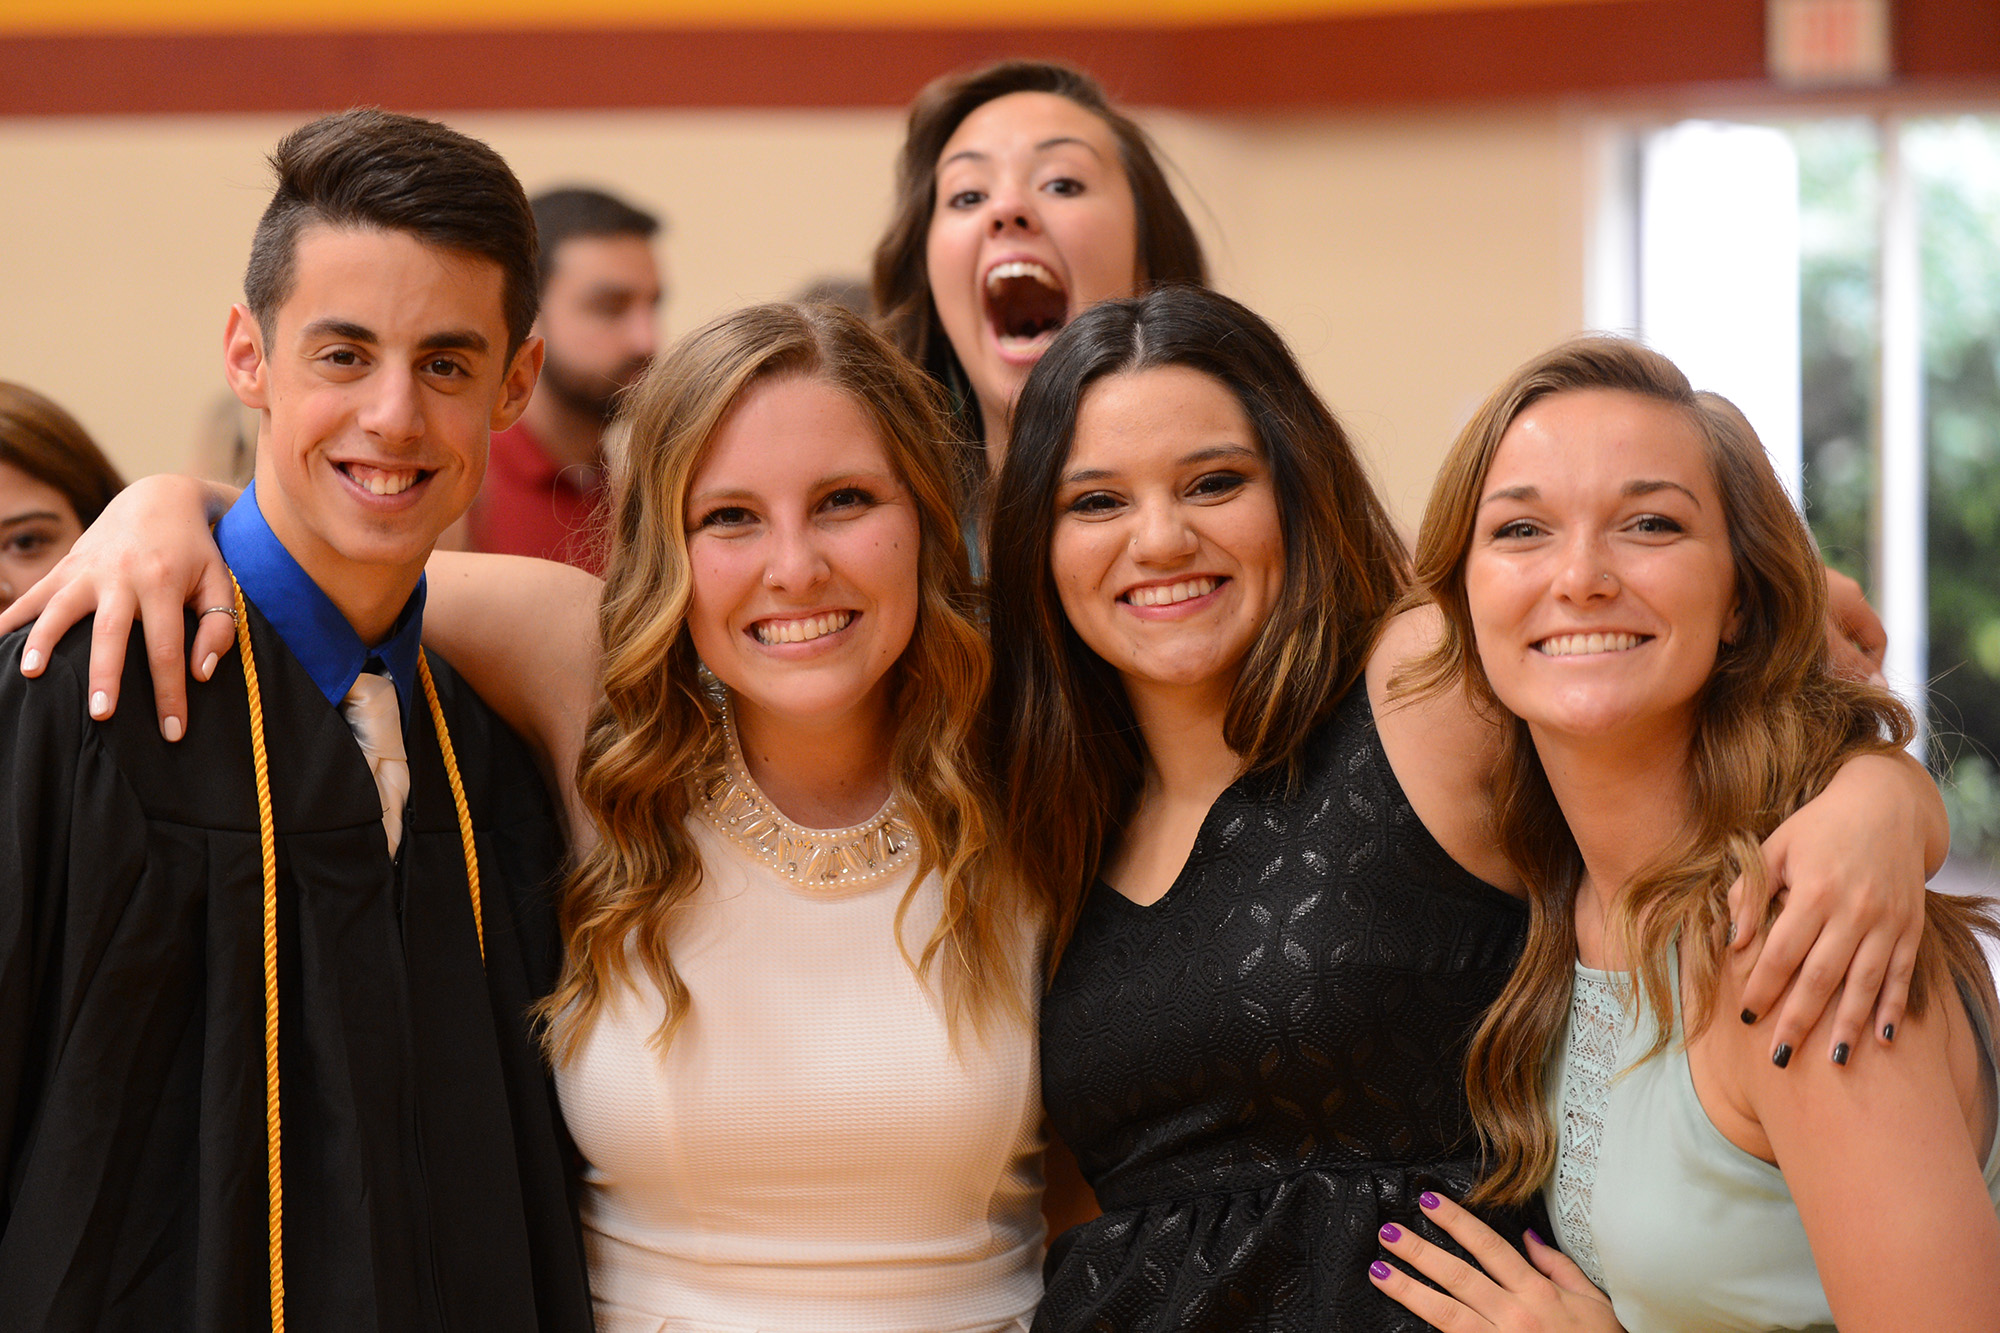 Graduates Bryce Nitzshe, Kiara Boettger, Casey Perez and Meredith Spicher take a final Hesston College photo together while Molly Bruner jumps in late.